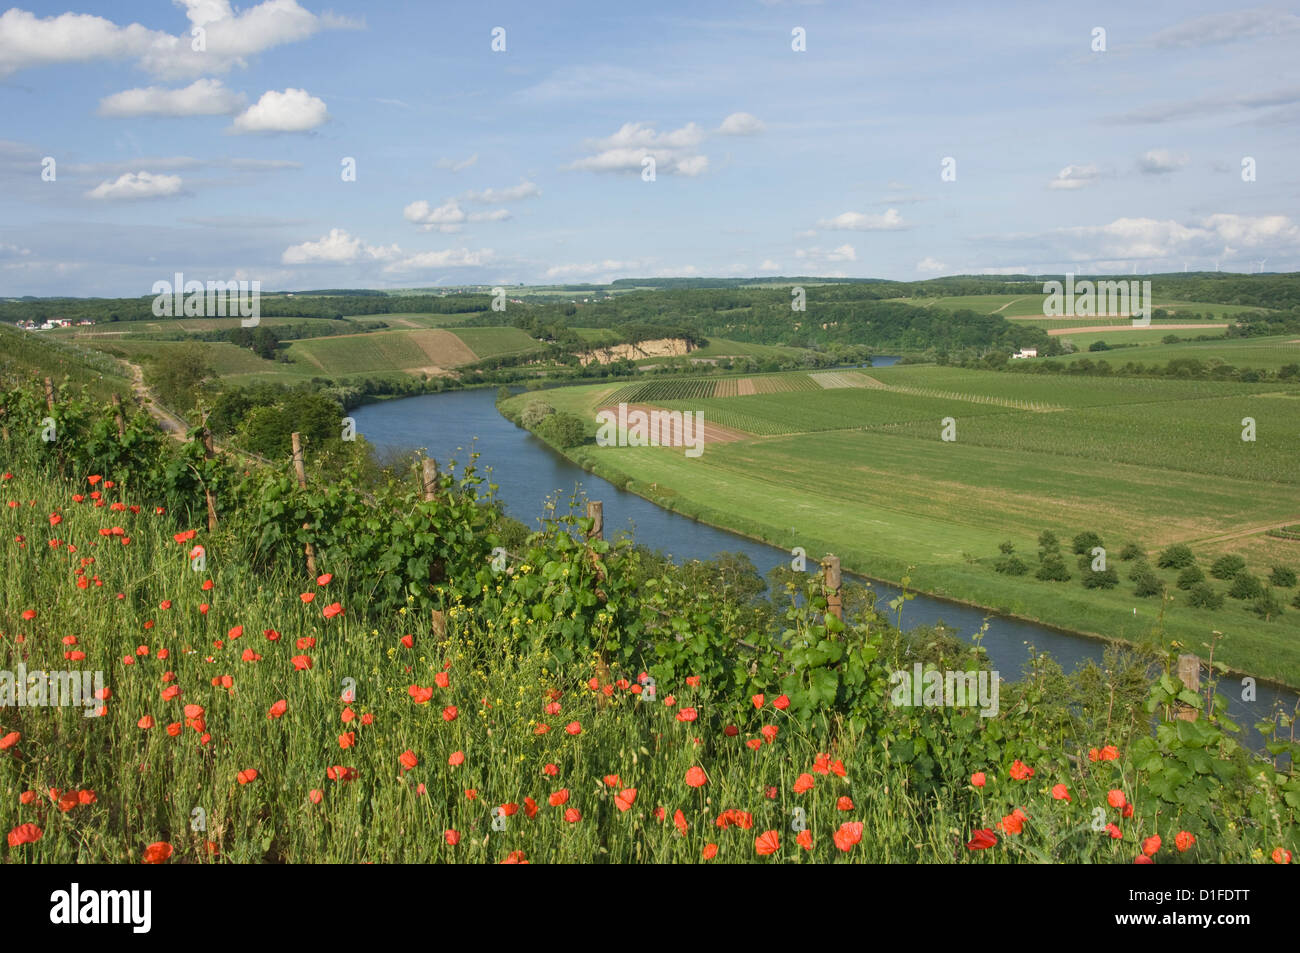 Poppies and vineyards along the border between Luxembourg and Germany separated by the River Moselle (Mosel), Germany, - Stock Image